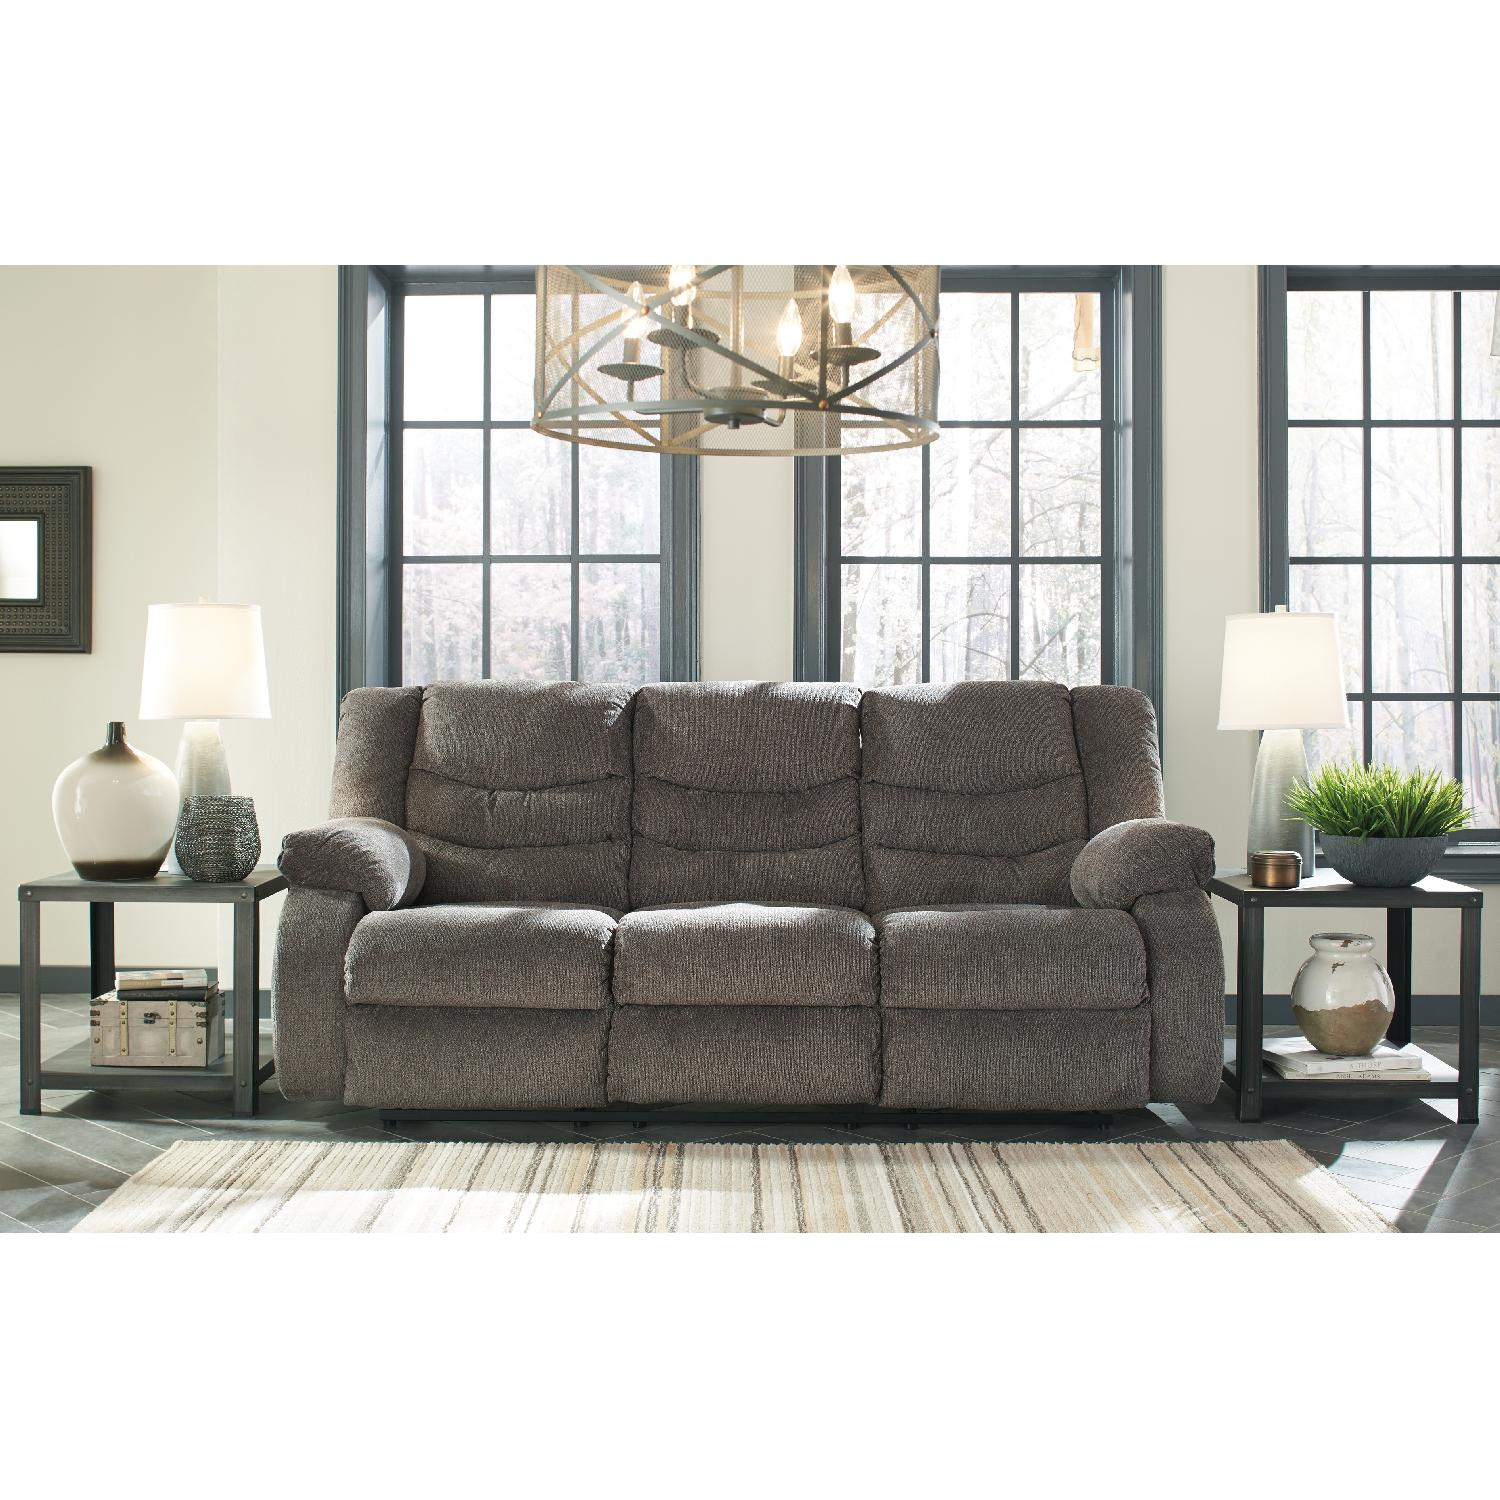 ... Ashleyu0027s Tulen Contemporary Reclining Sofa in Fabric Gray-3 ...  sc 1 st  AptDeco & Ashleyu0027s Tulen Contemporary Reclining Sofa in Fabric - AptDeco islam-shia.org